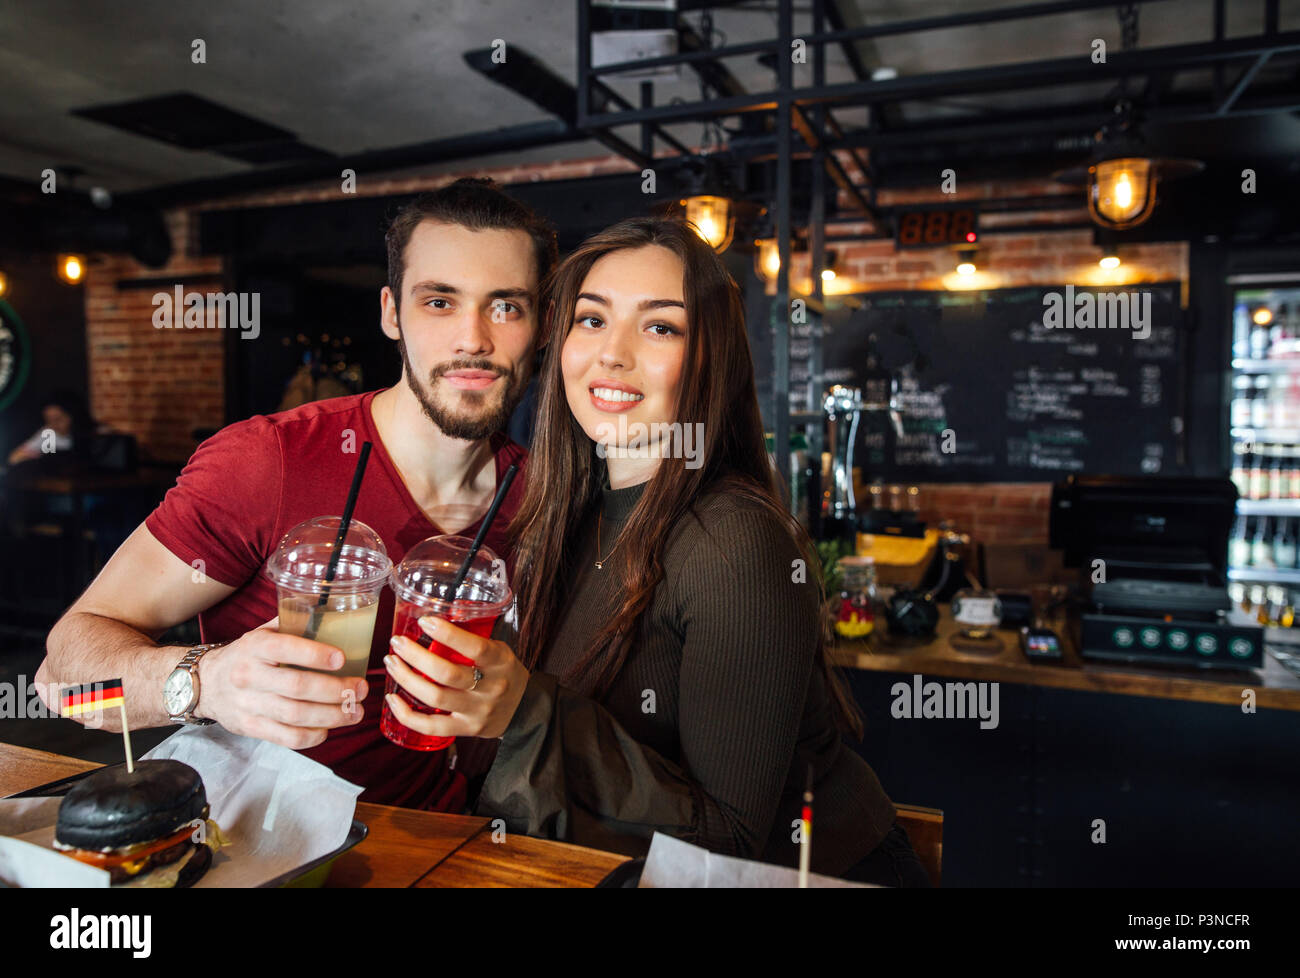 Positive young loving couple meeting in a cafe. - Stock Image